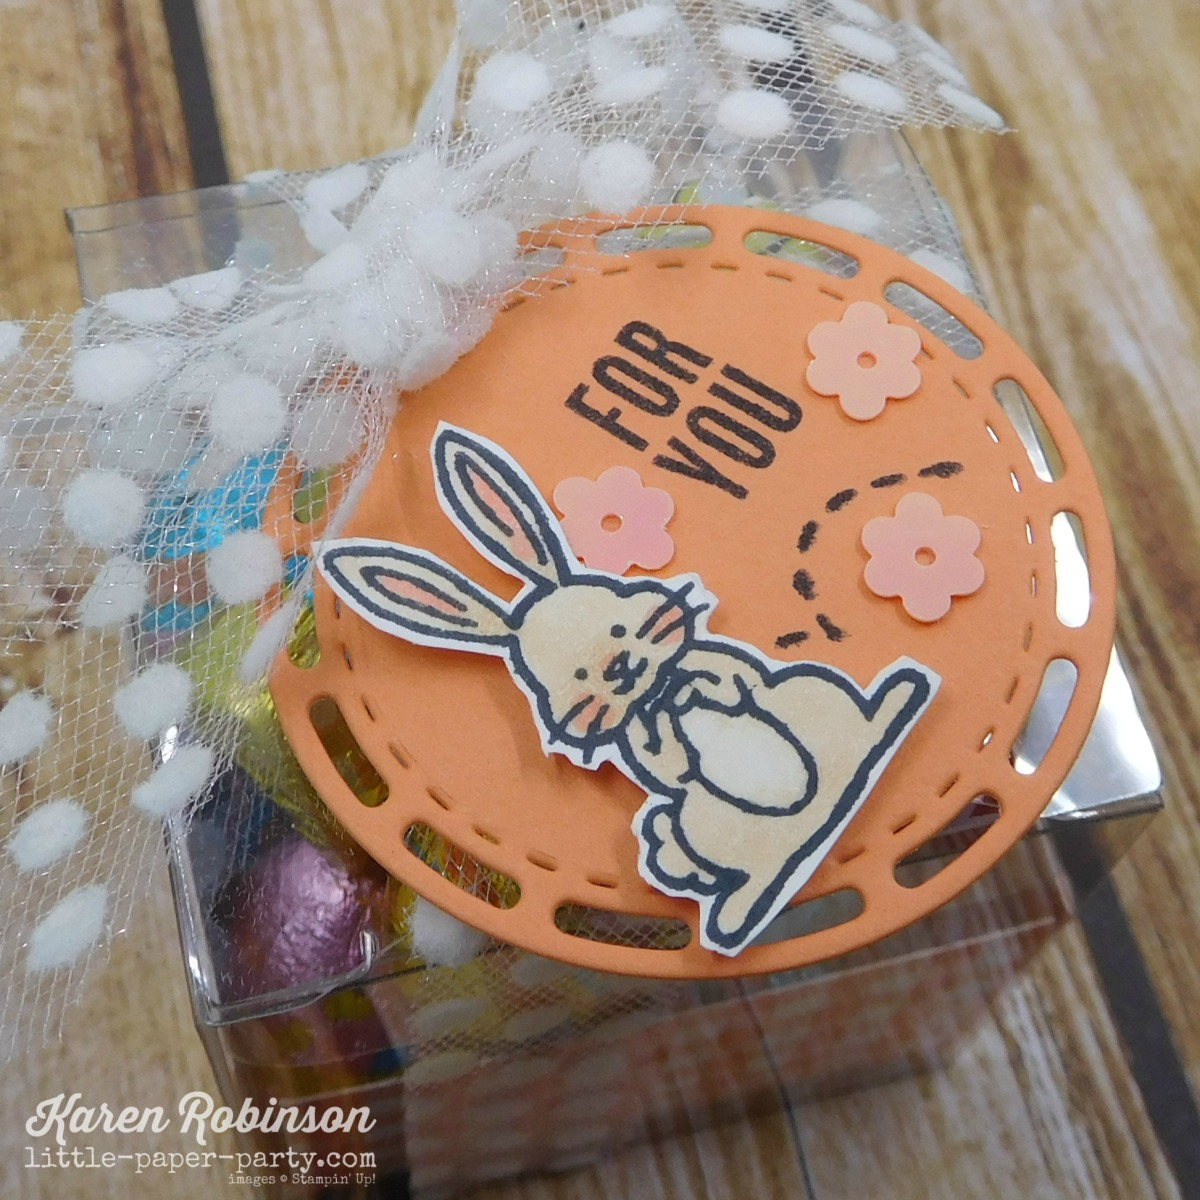 Bunny Hop 2019 -Last-minute treats